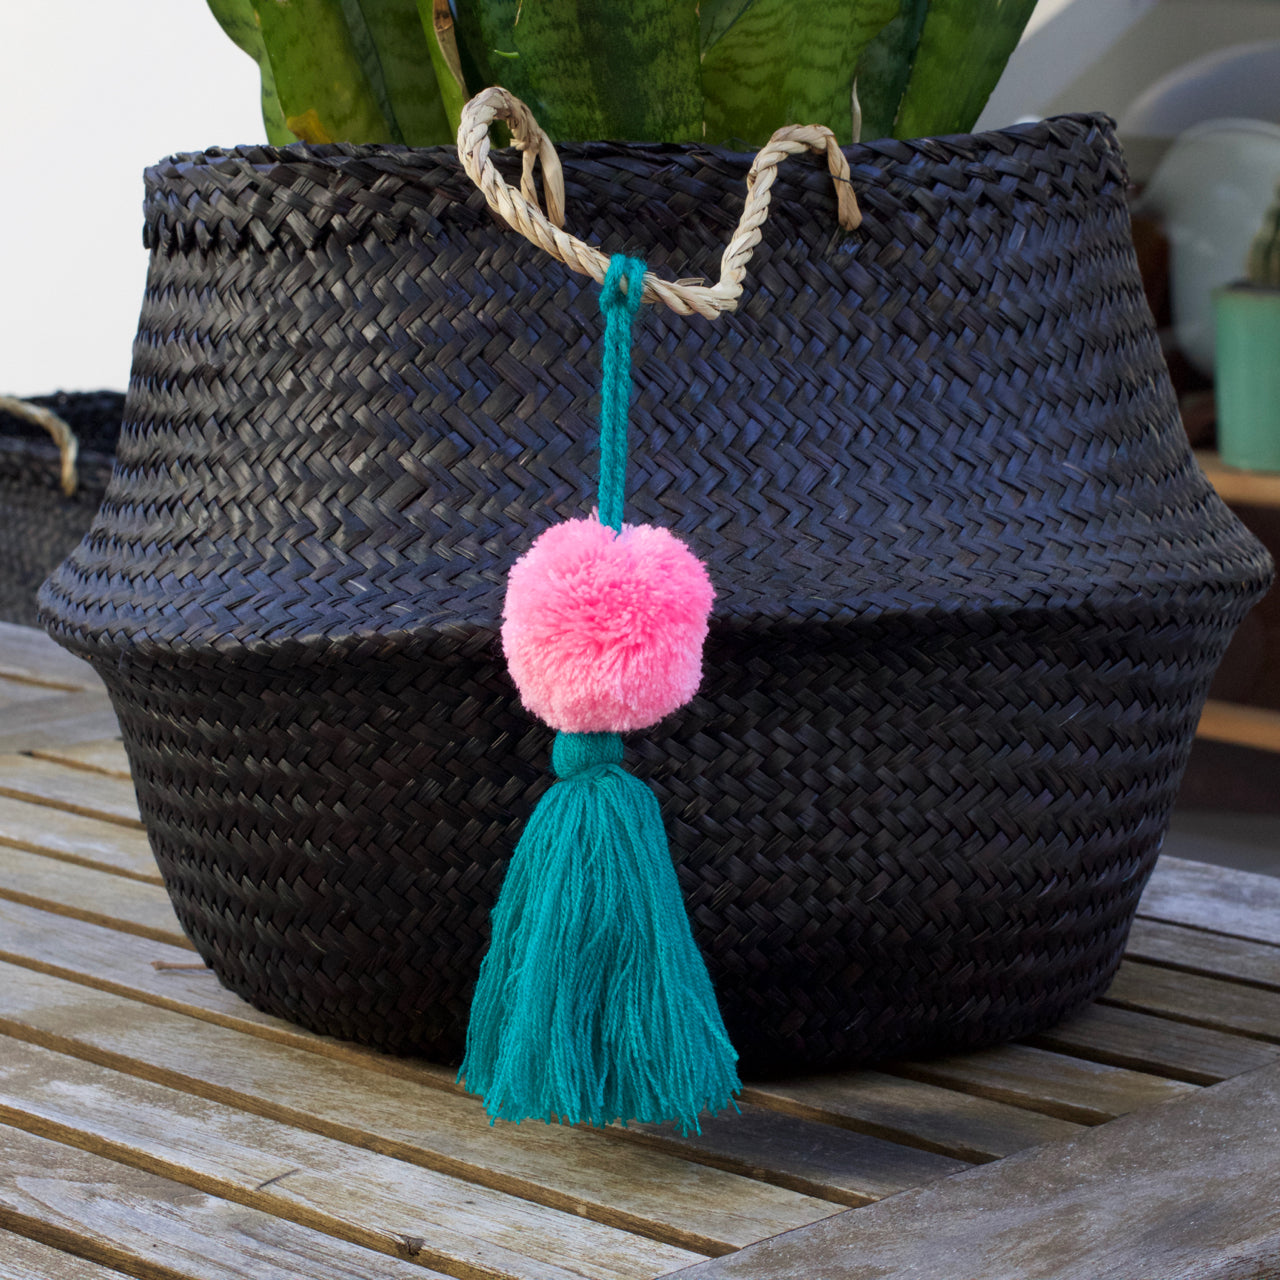 Pom Pom 01  Decor Turquoise & Pink - Cielo Collective handmade with tradition creativity and integrity